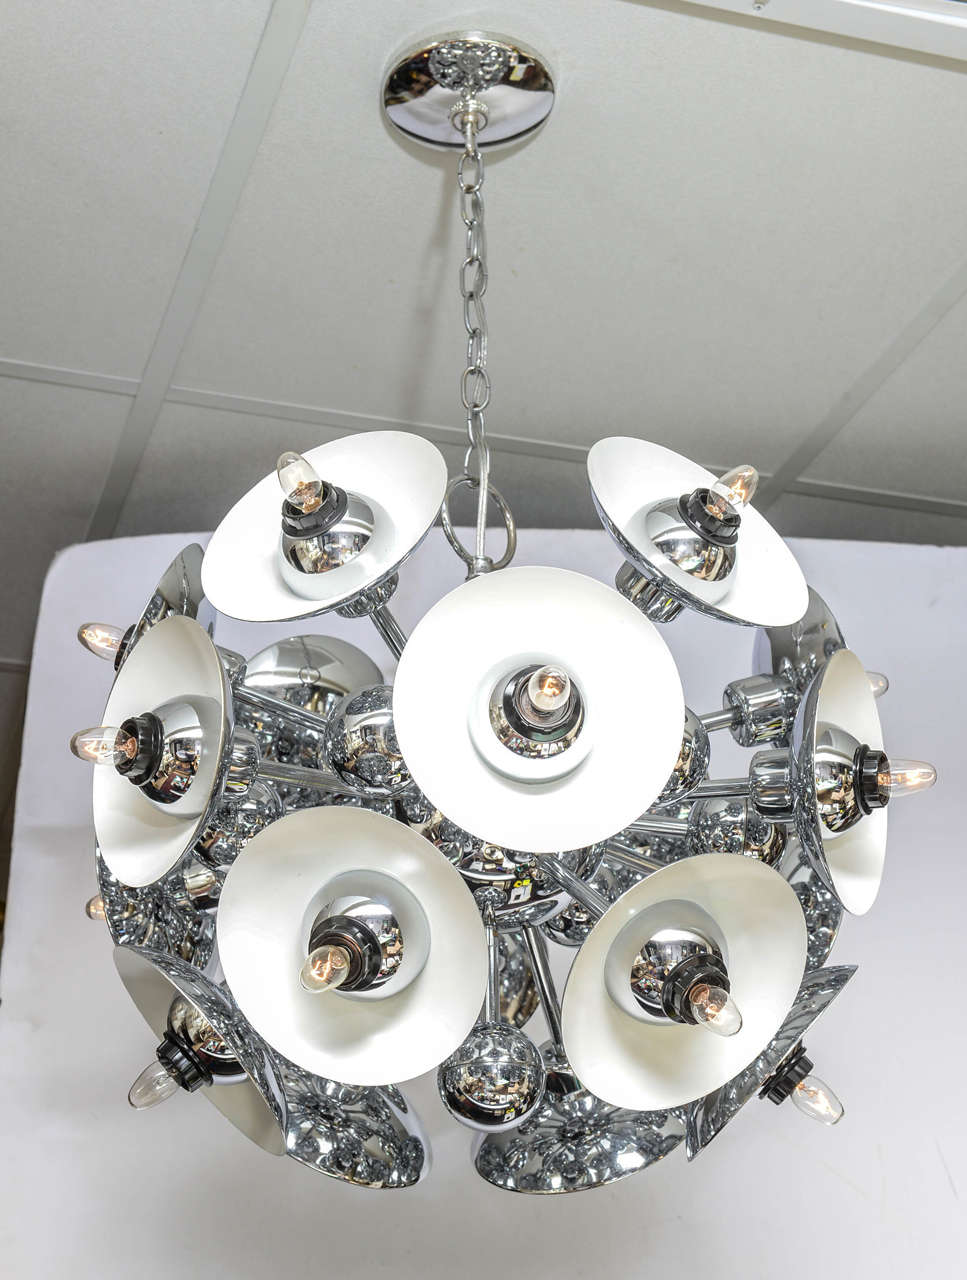 Eighteen chrome saucers on Sputnik arms and spheres throughout. Lots of glam!